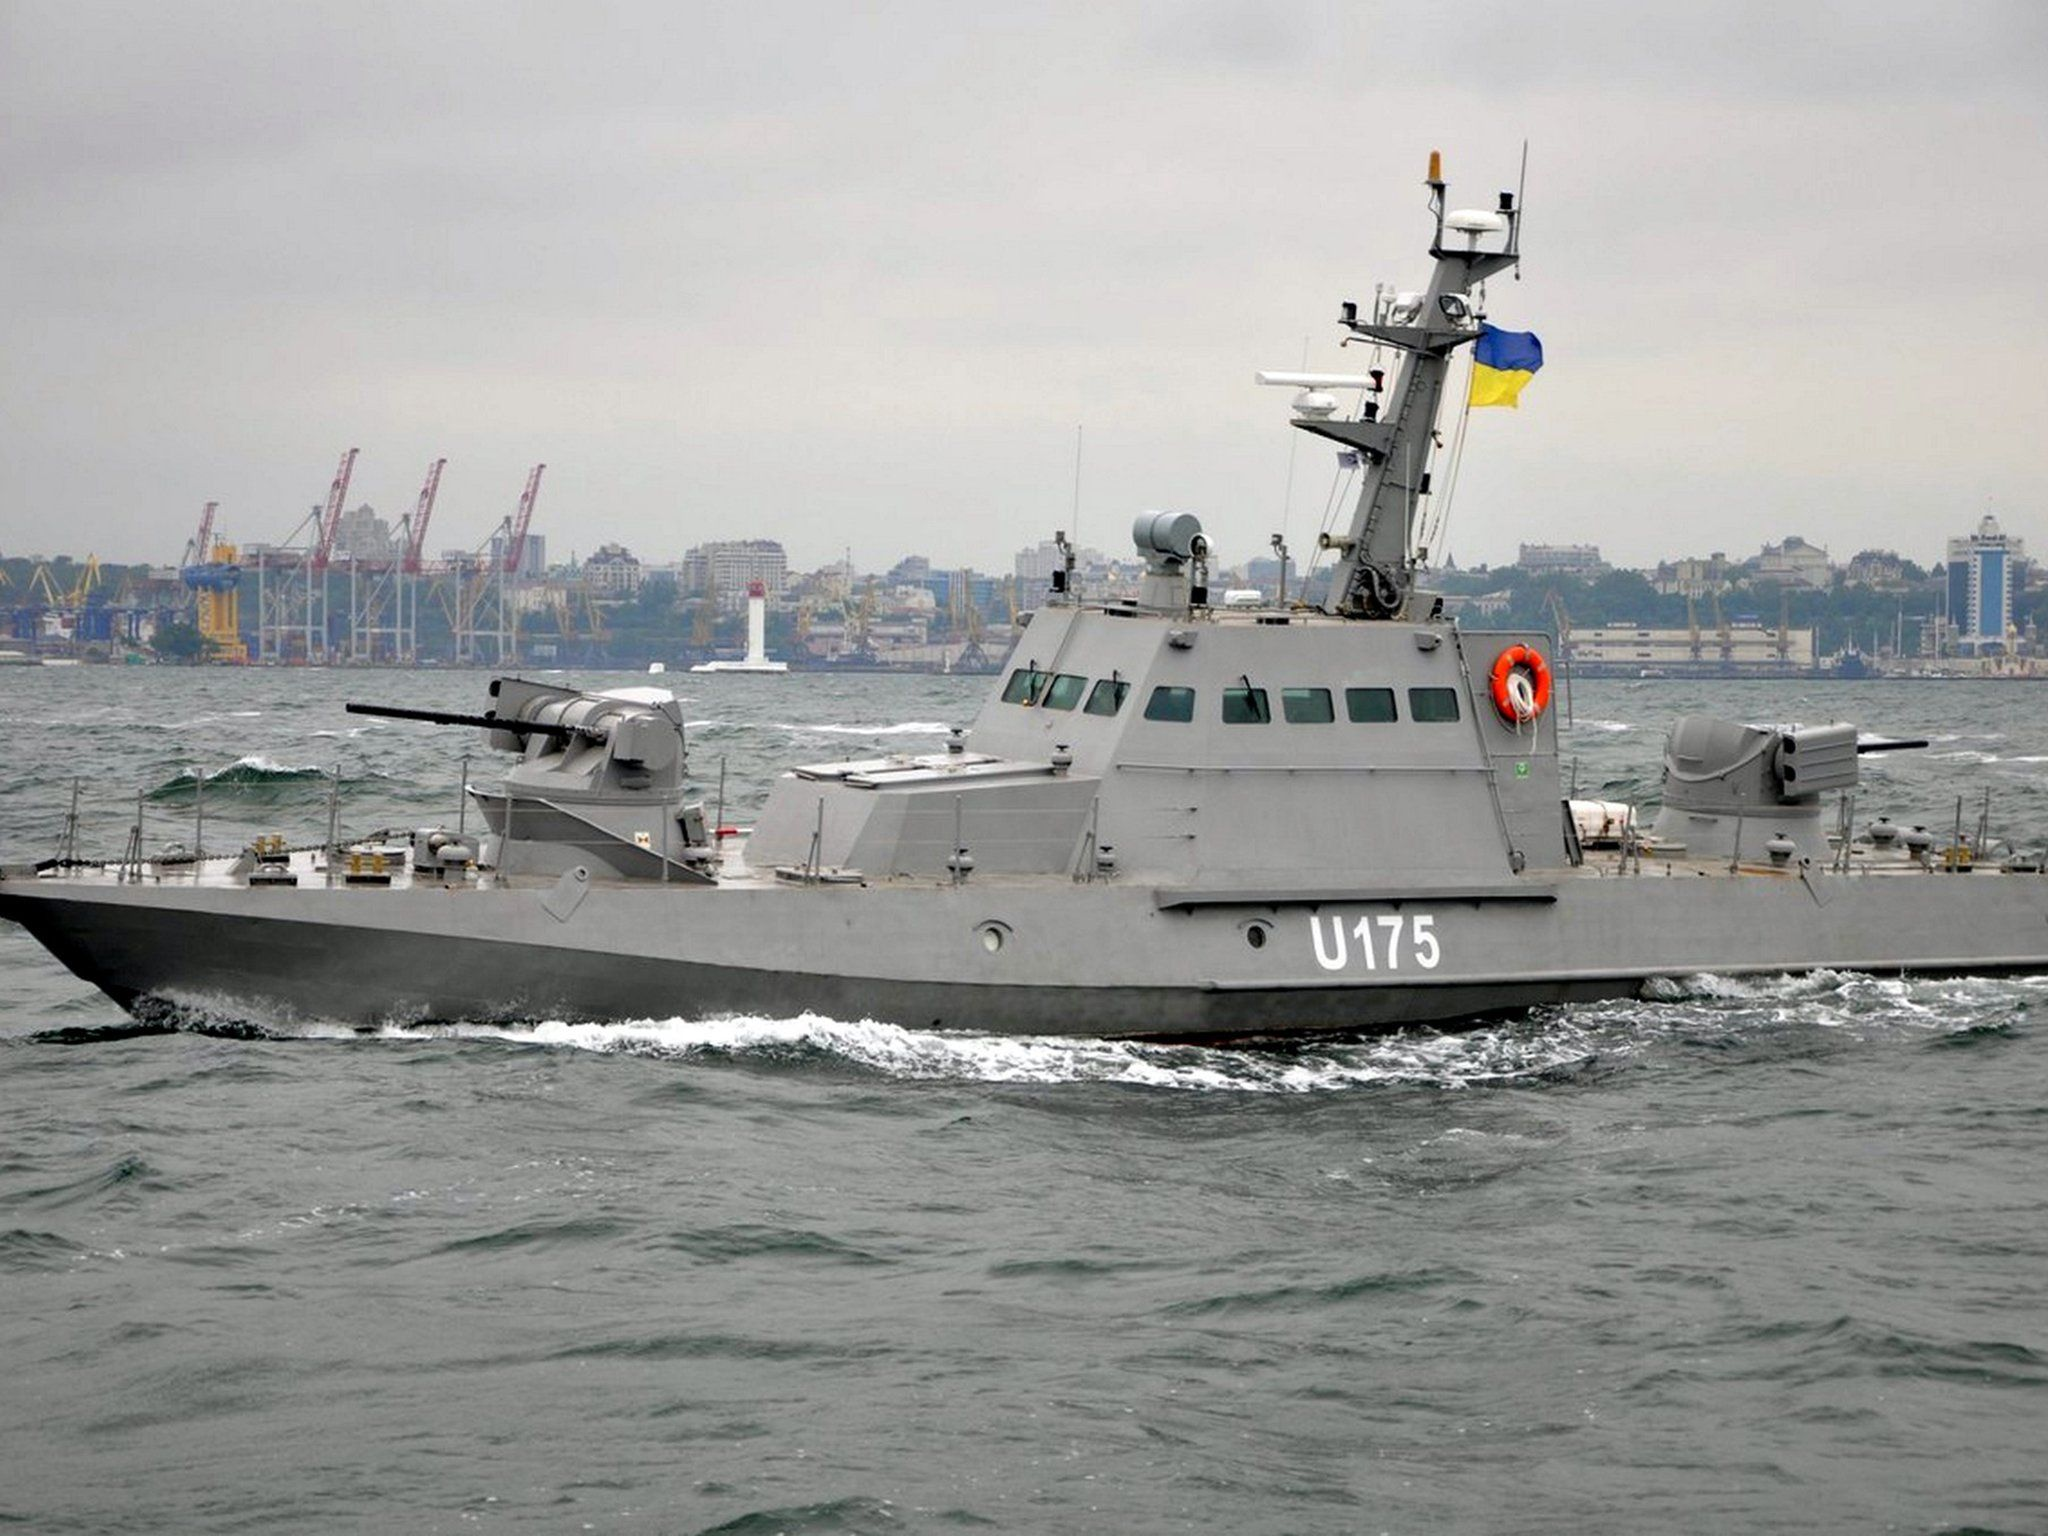 Crimea Three Ukraine Navy Boats Captured By Russian Forces